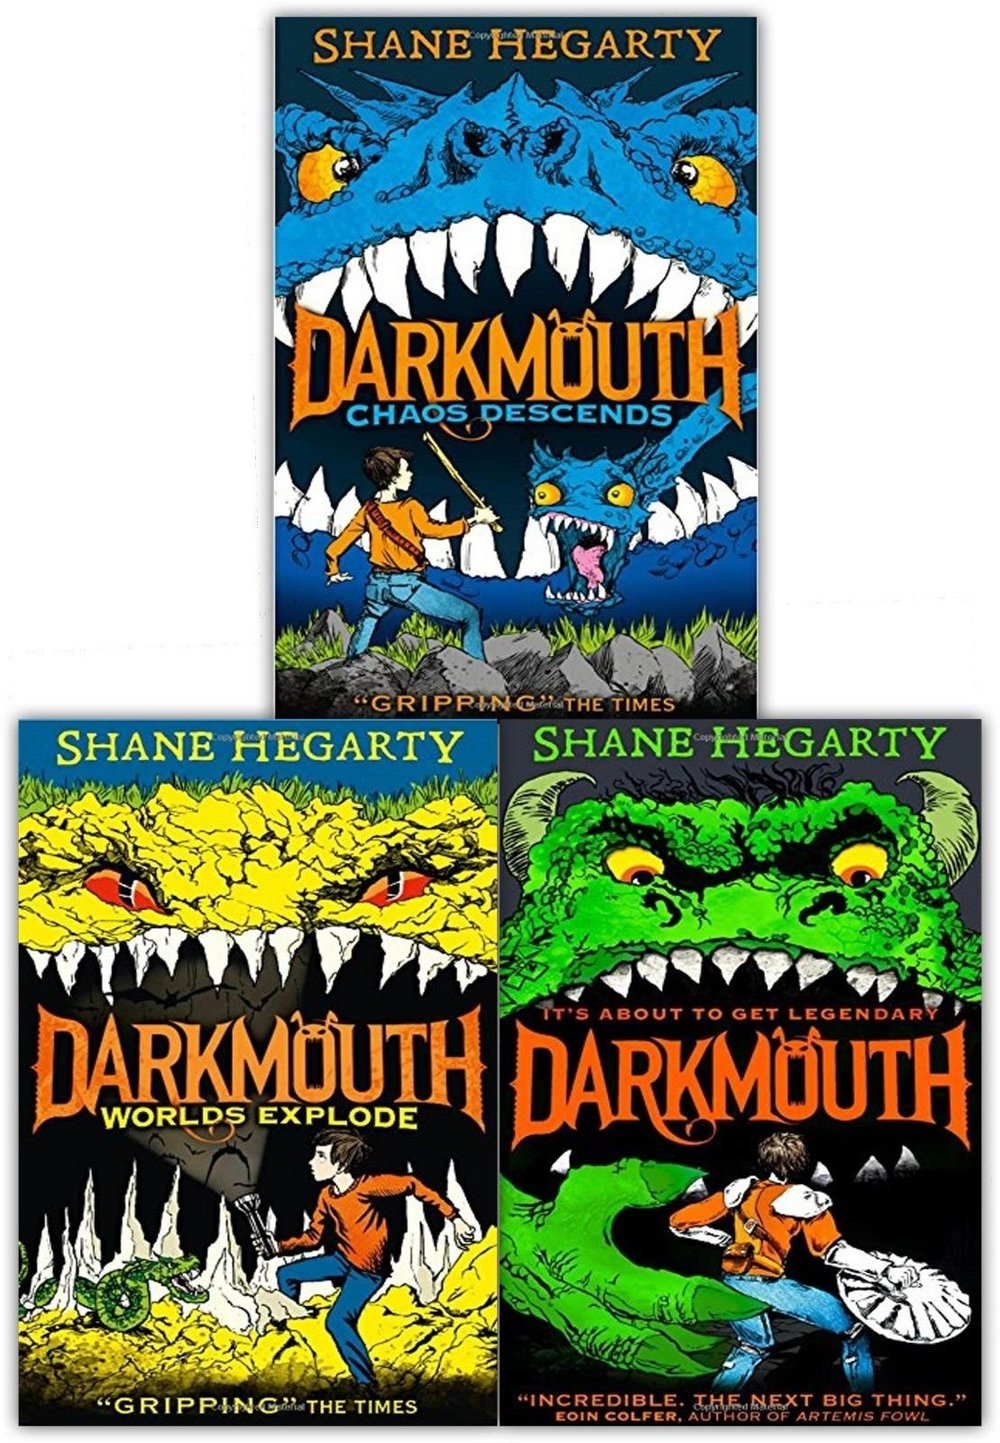 Shane Hegarty Darkmouth.jpg